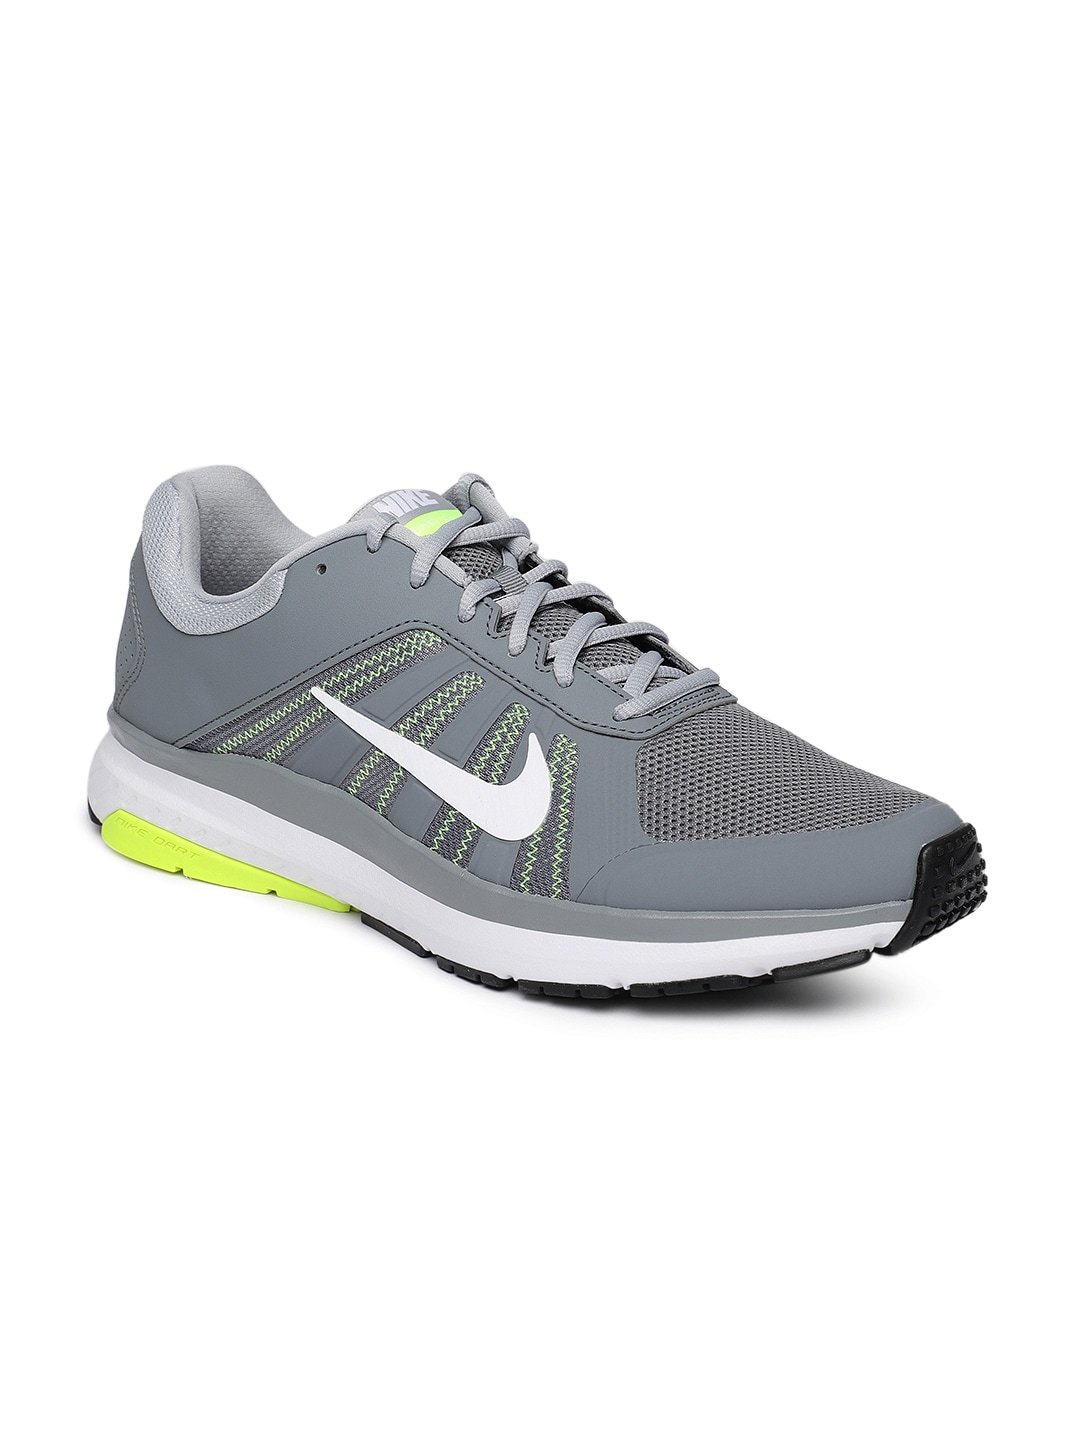 timeless design 37f61 22516 Nike Shoes - Buy Nike Shoes for Men, Women   Kids Online   Myntra